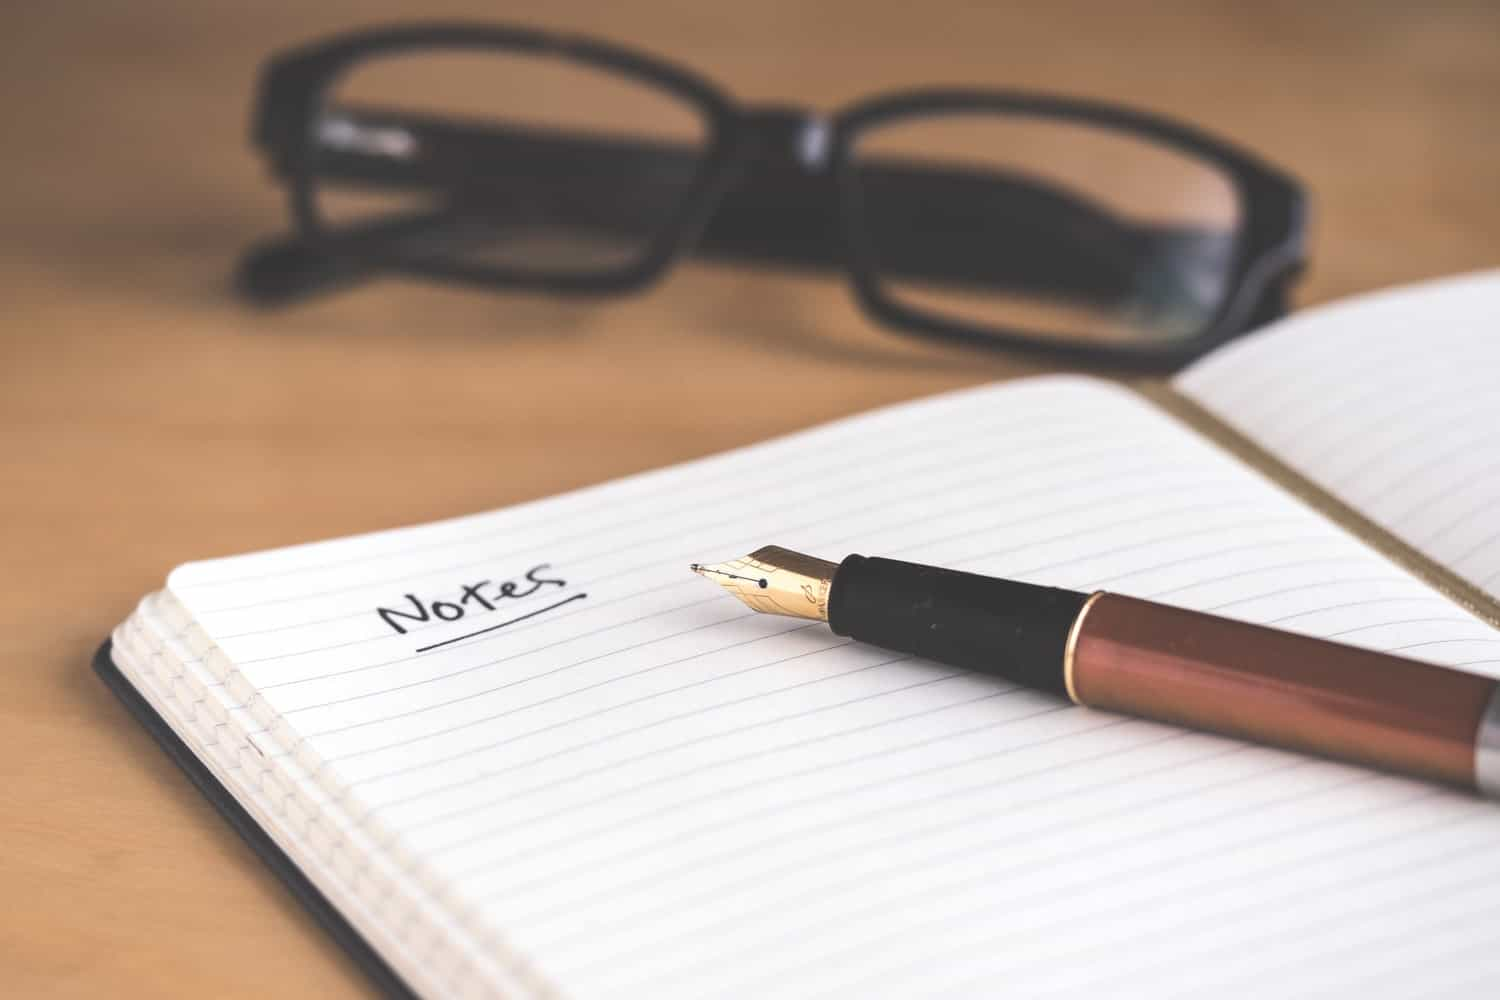 A Notebook with a pen and reading glasses